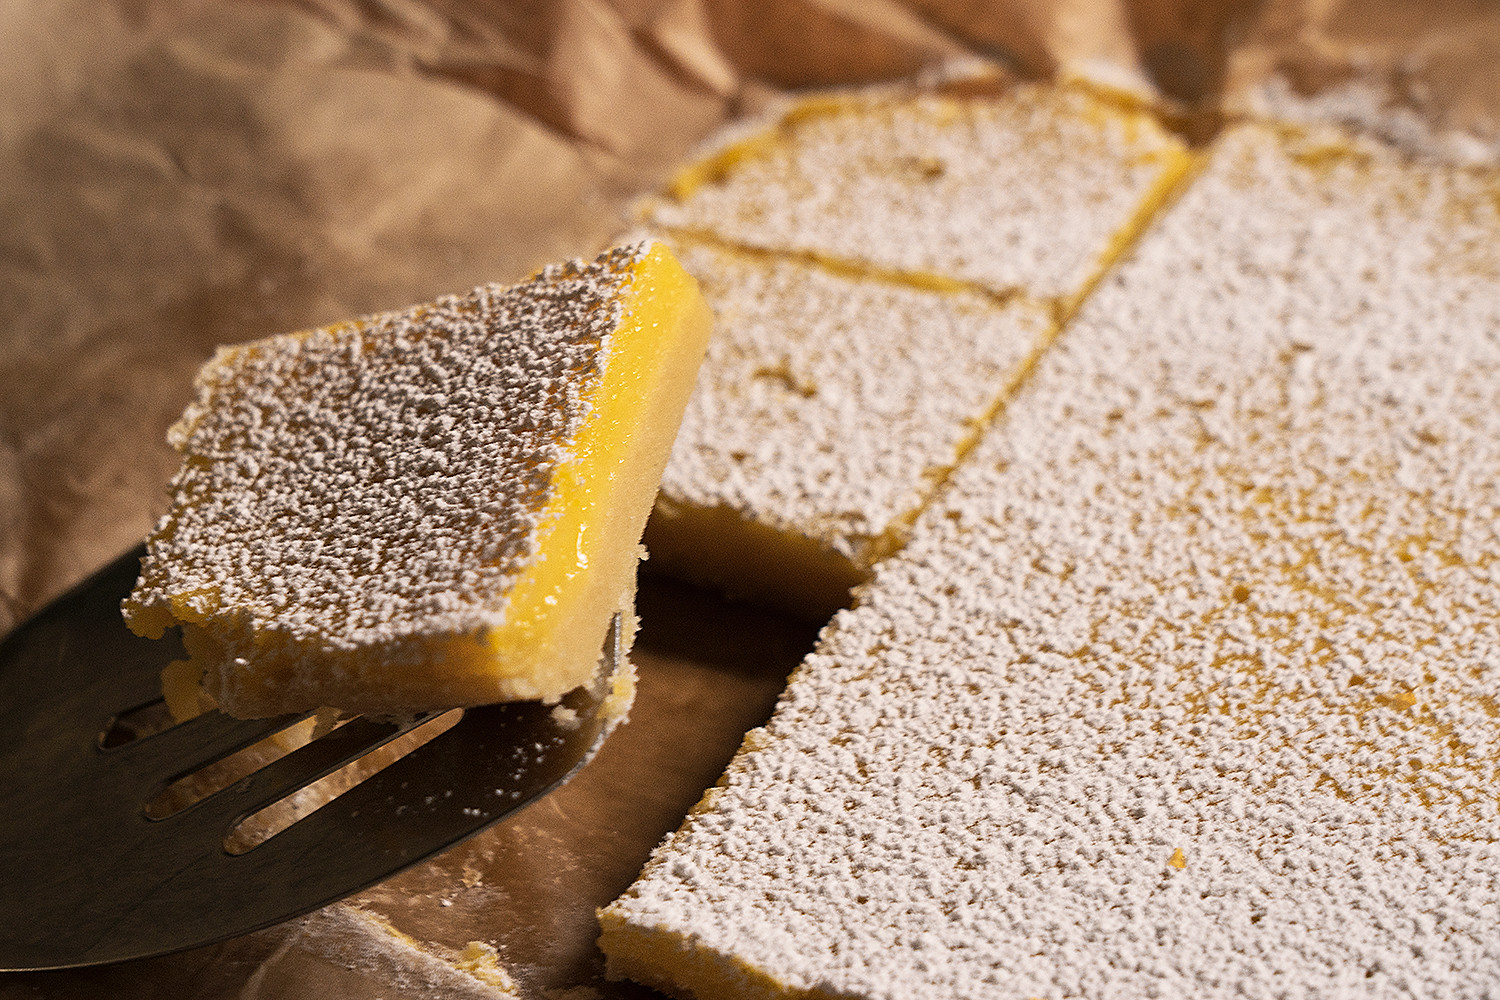 16lemonbars-baking-recipe-food-dessert